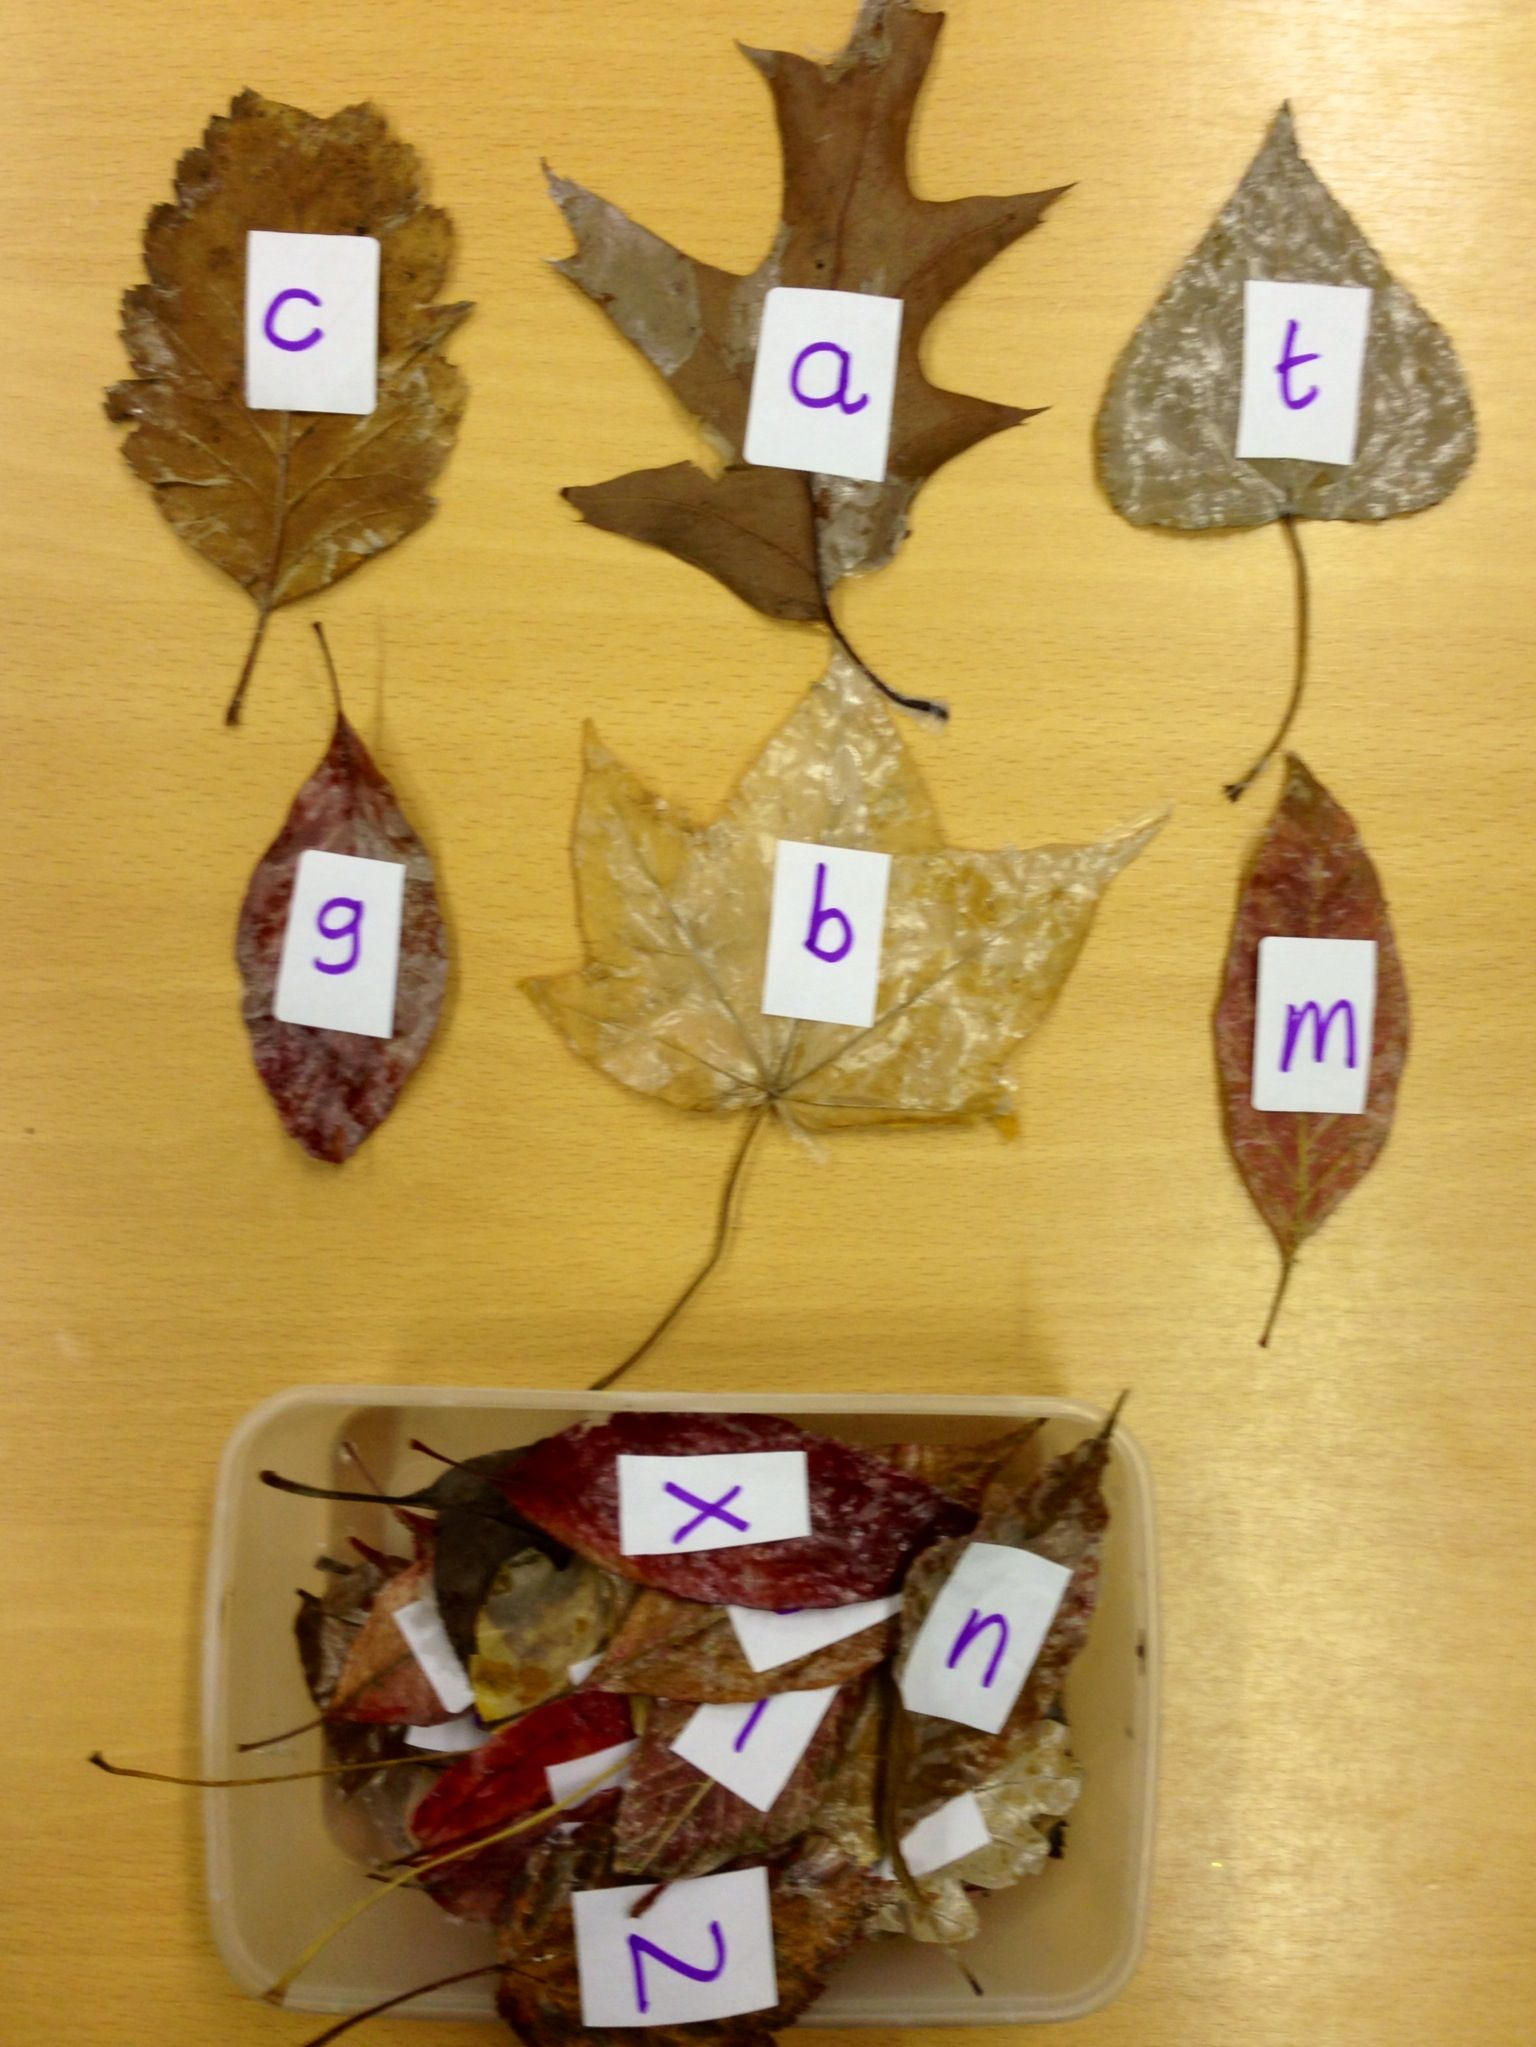 We Re Going On A Leaf Hunt We Hid Leaves With Different